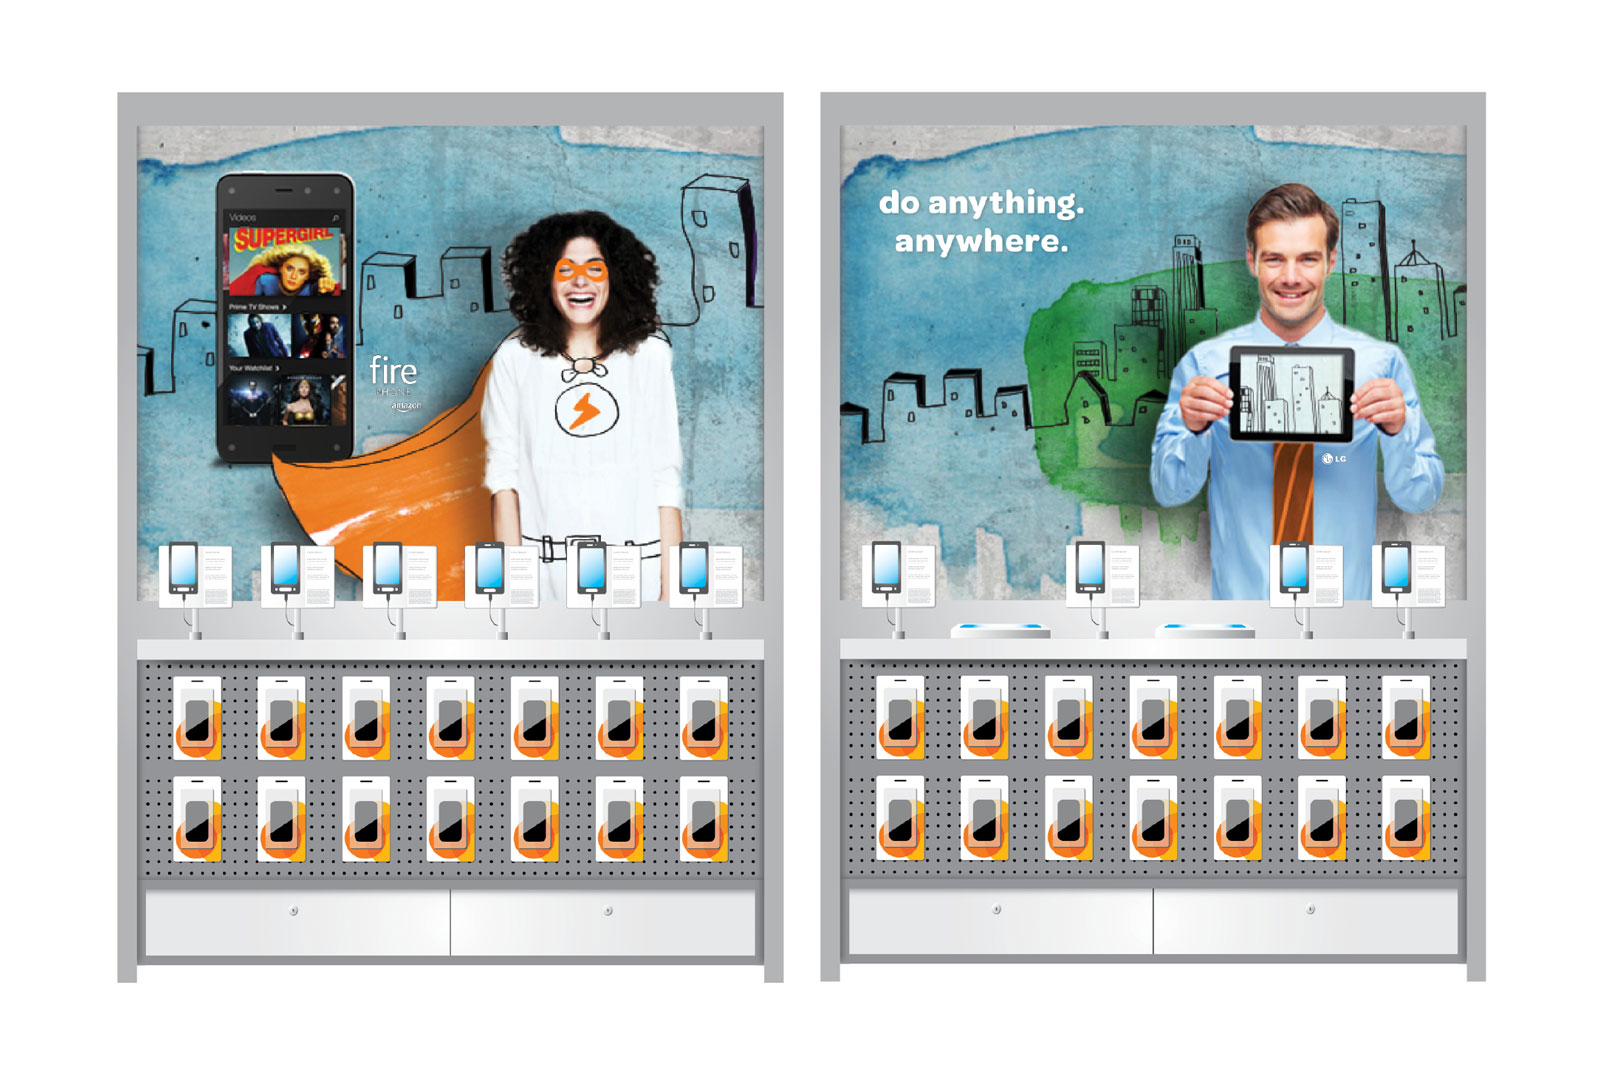 AT&T Retail Experience - Product experience